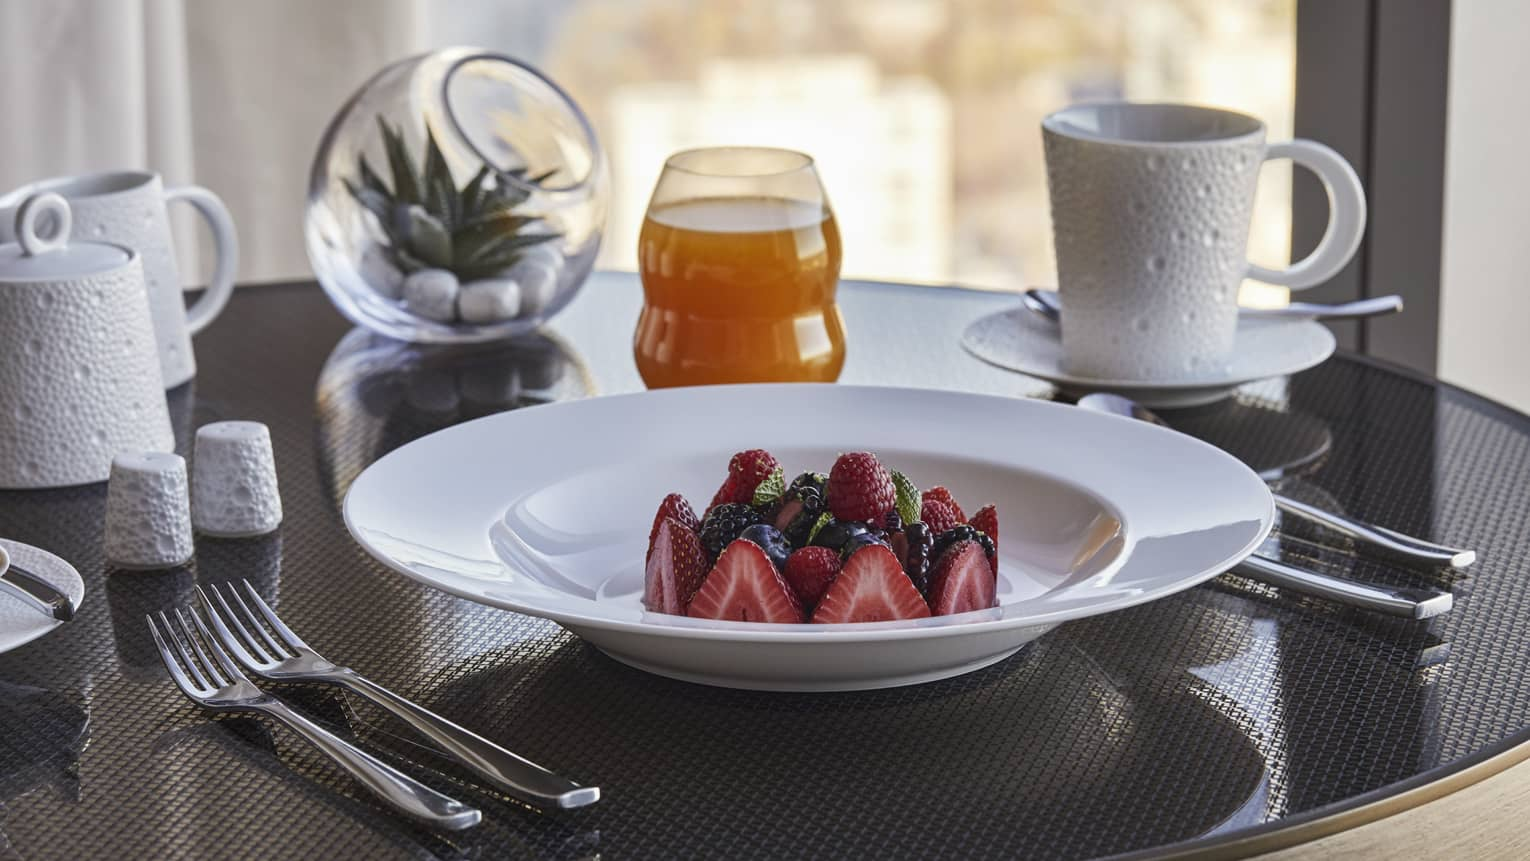 A close up in-room dining detail of strawberries and blueberries in a white porcelain bowl along with a cup of coffee and juice